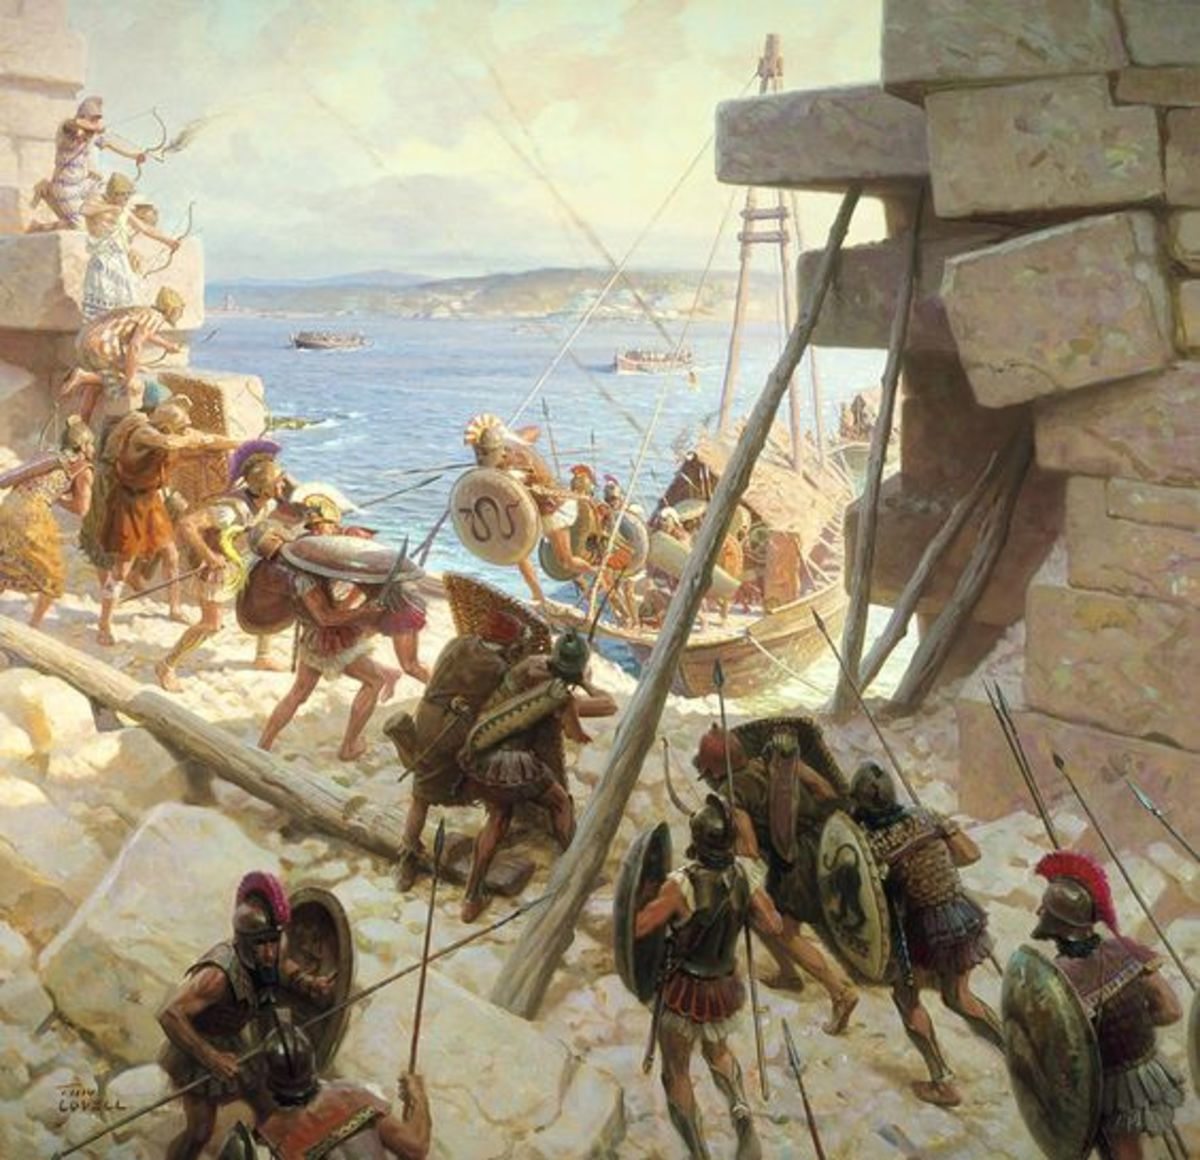 Considered illegal today, the killing of military age males and turning inhabitants into slaves was par for the course in the ancient world. And this included Alexander's sacking of Tyre.